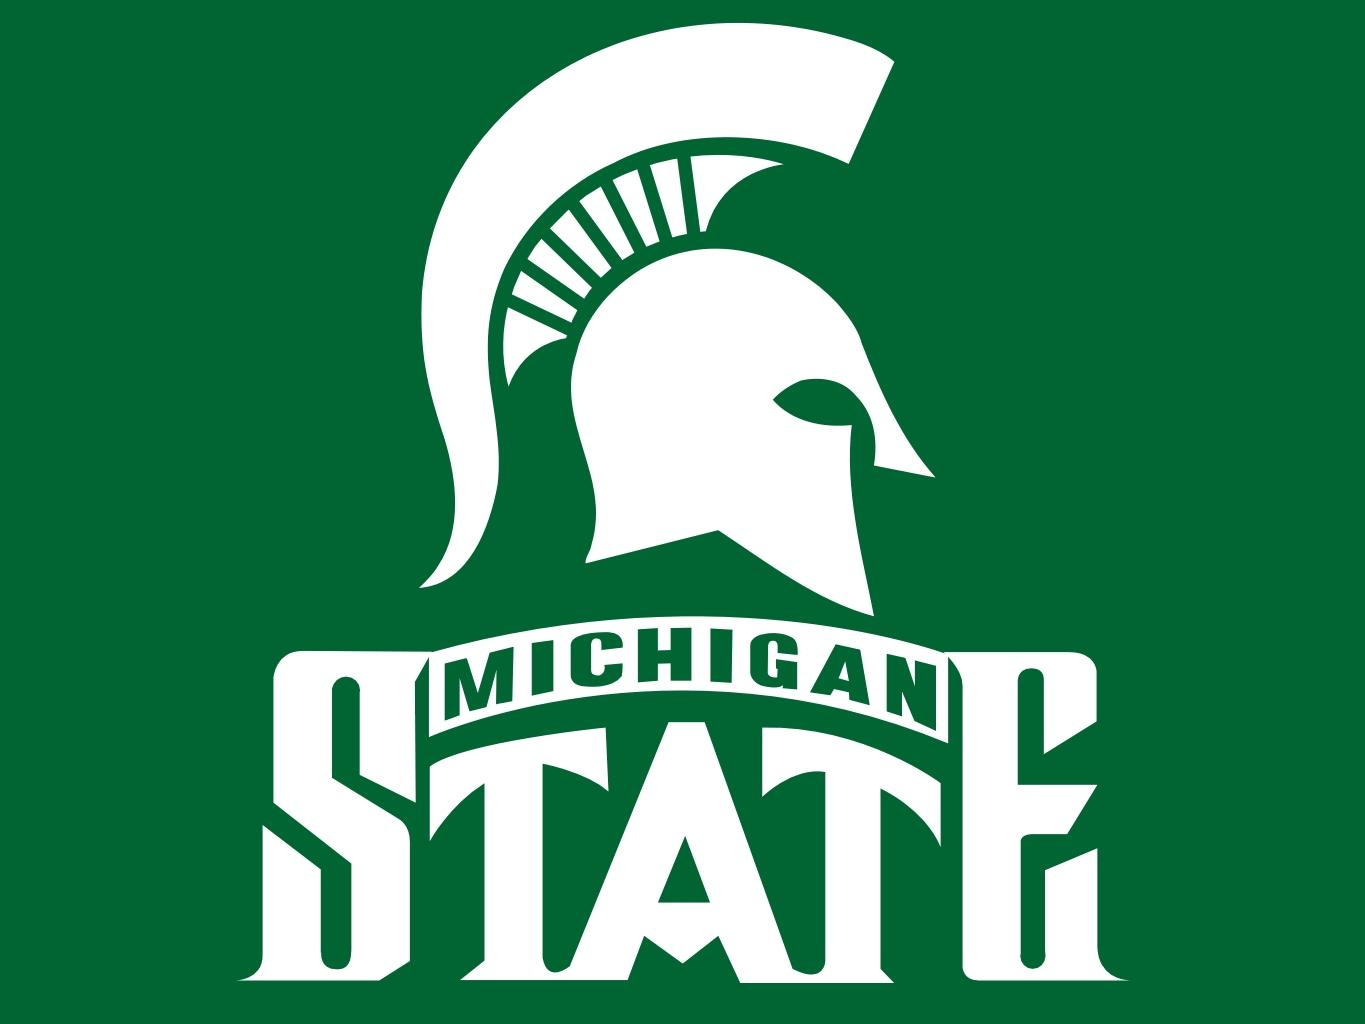 Not everyone happy about Engler as potential Interim President at MSU